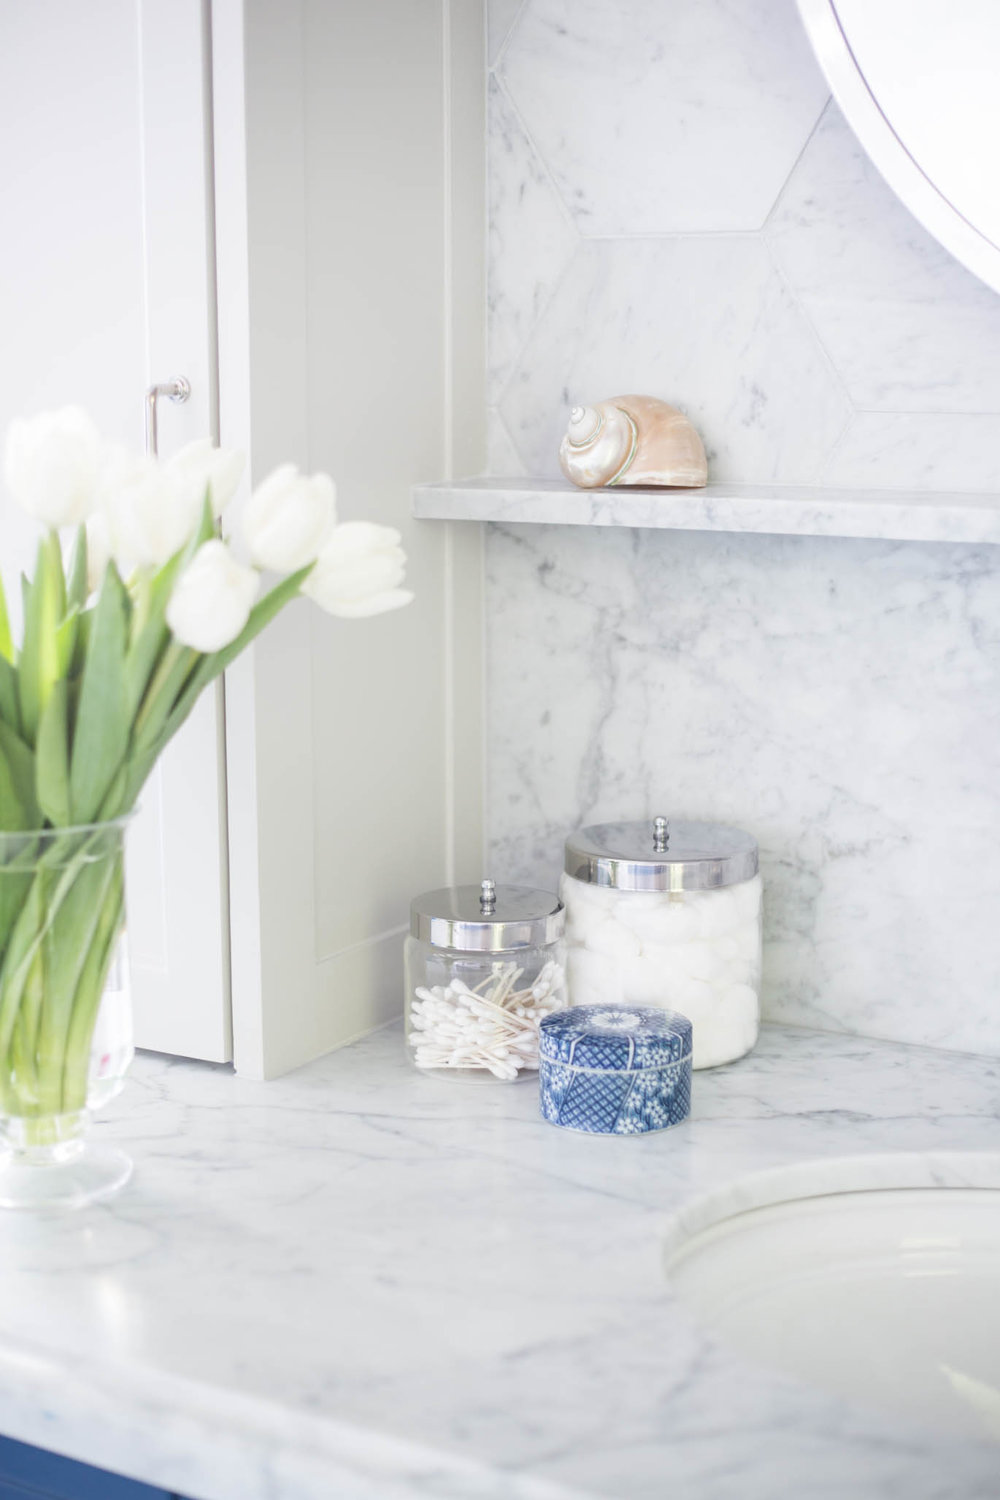 Marble ledge at bathroom sink | Carla Aston, Designer | Tori Aston, Photographer